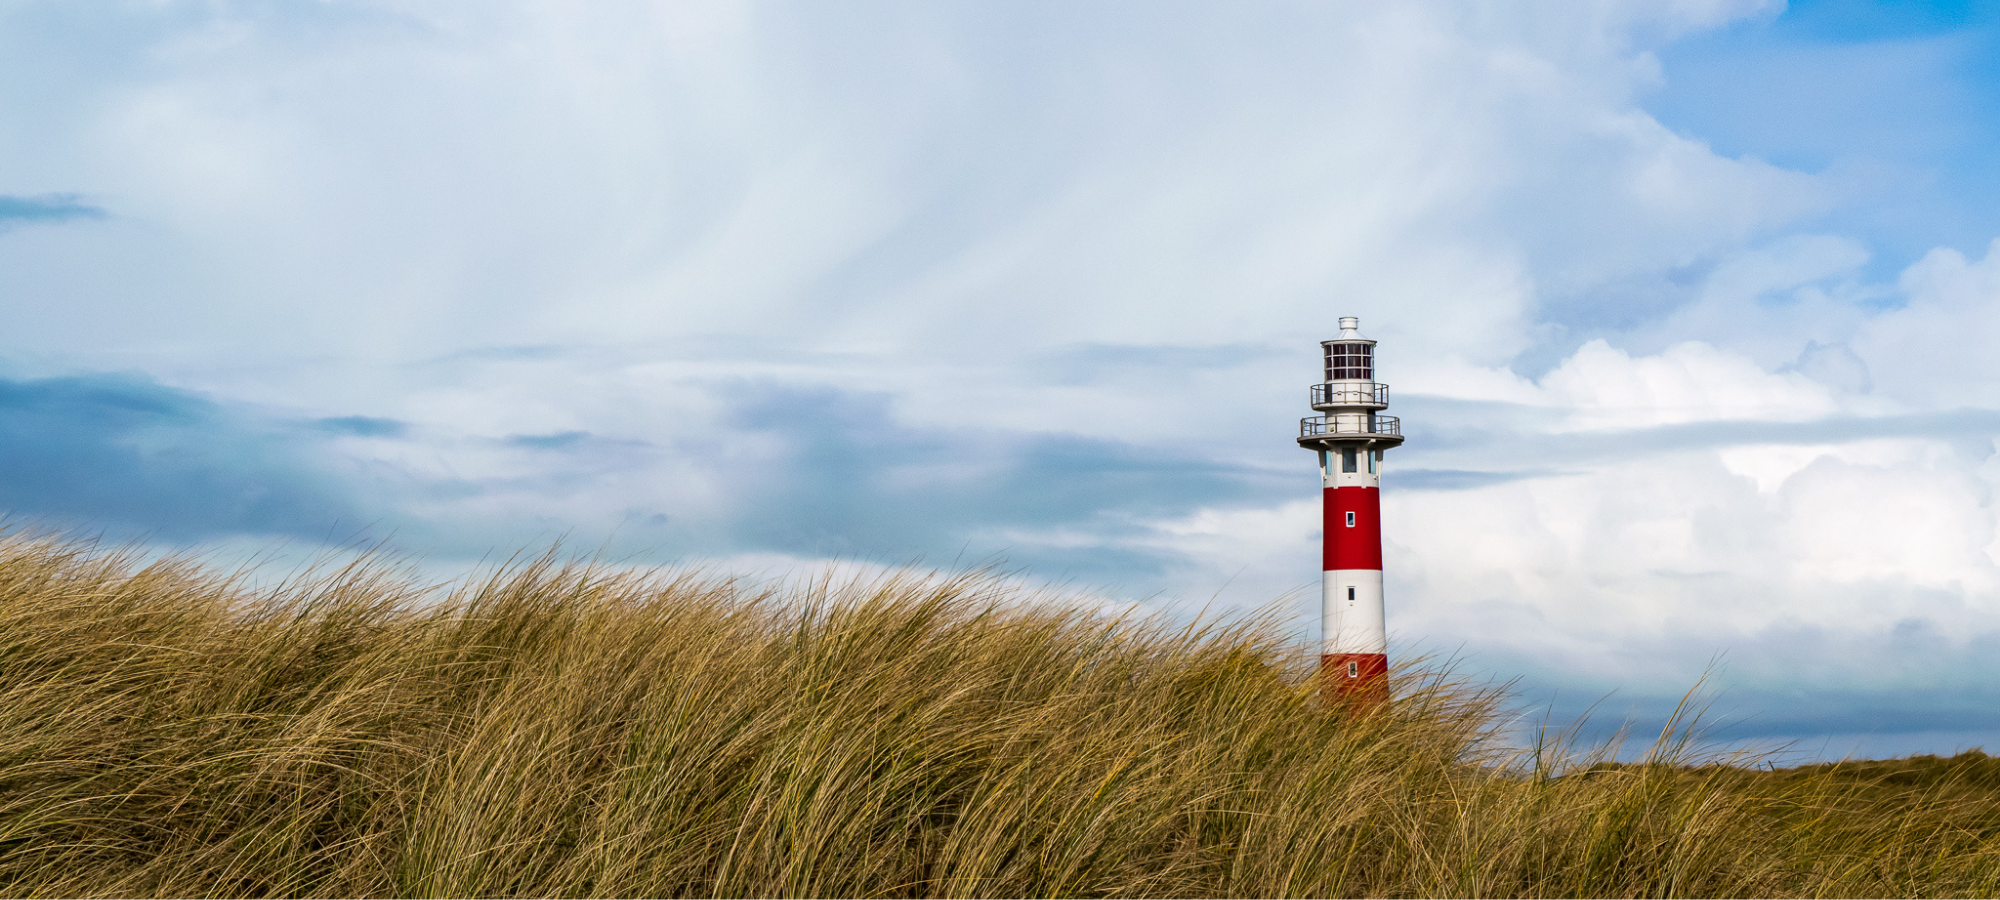 Nieuwpoort lighthouse standing out against the blue sky on the Belgian coast